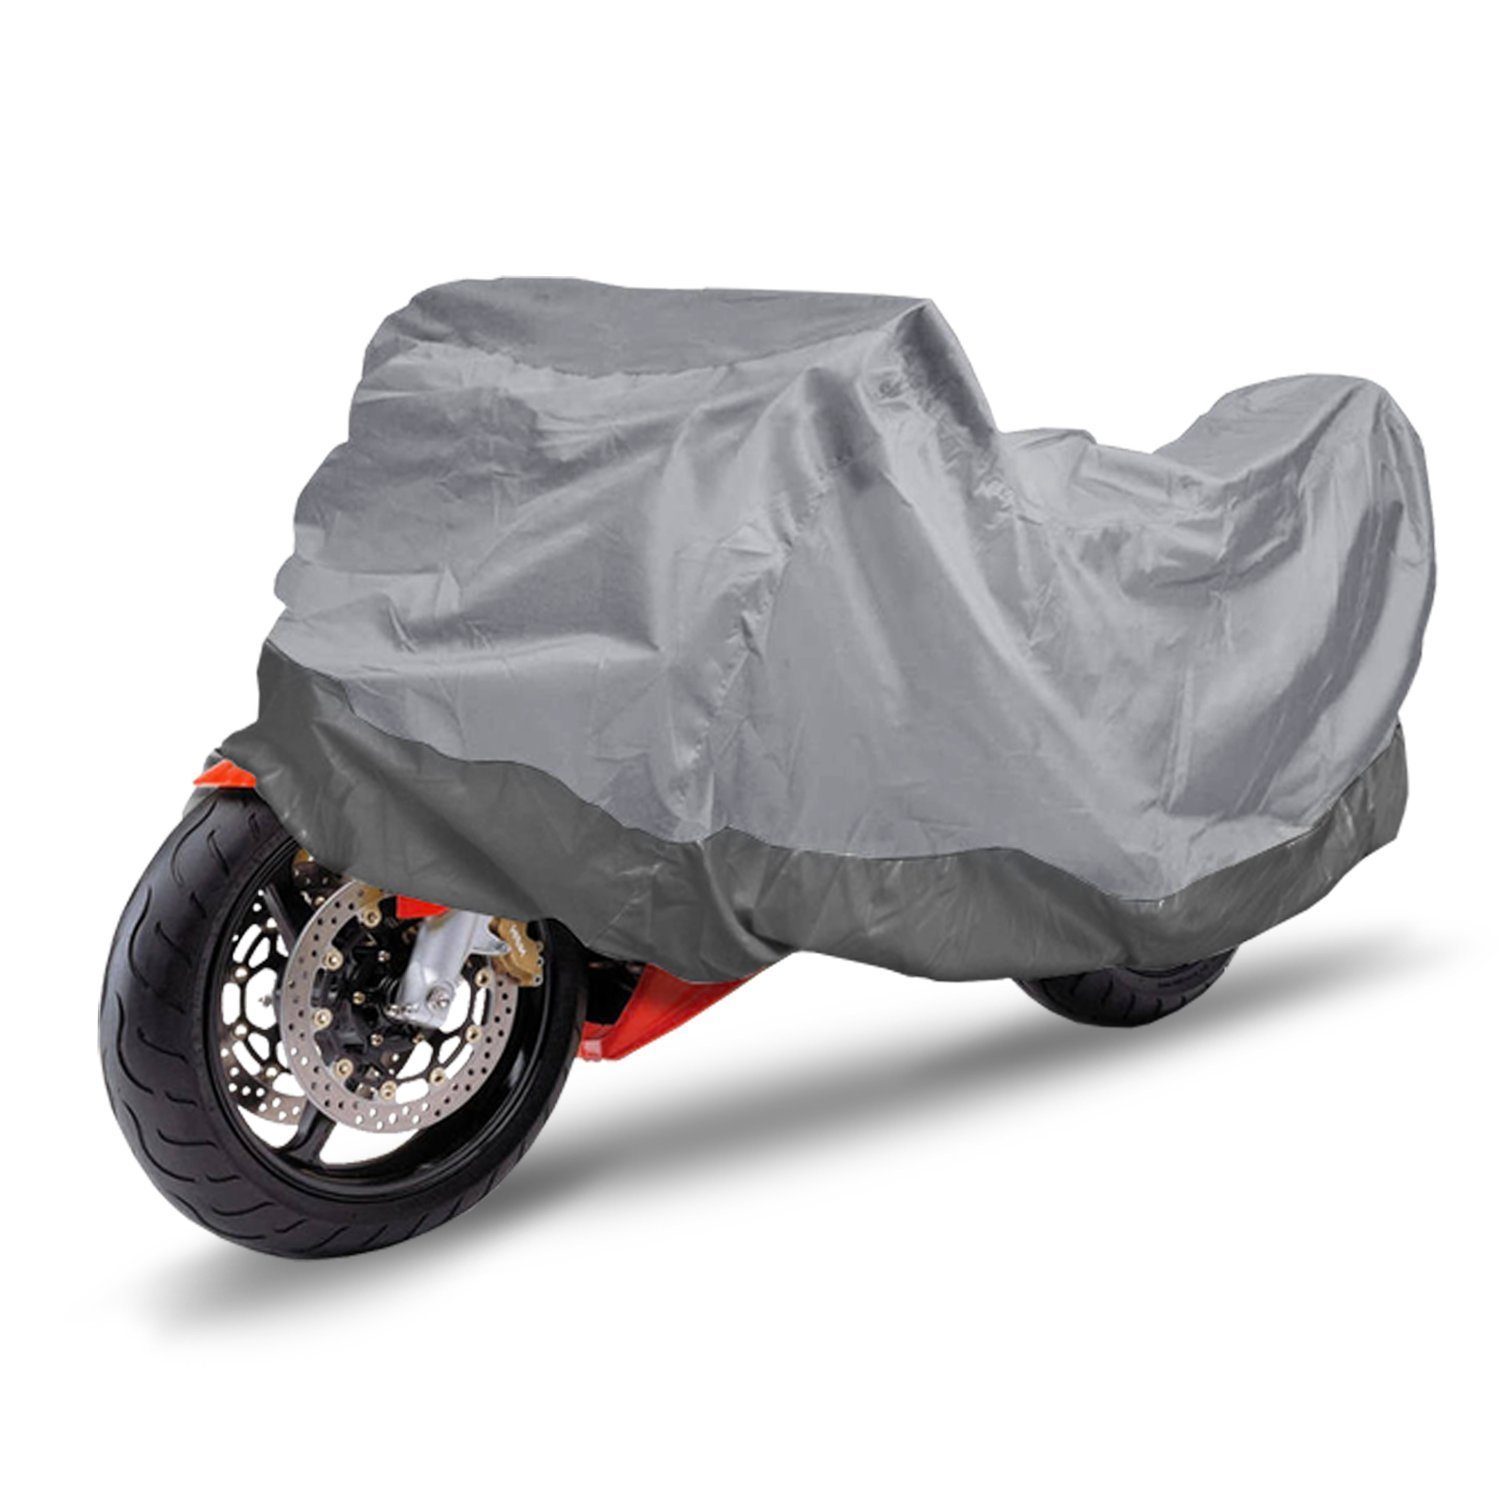 Yukon Glory All Season Waterproof Universal Motorcycle Cover Works for Most Motorcycles and Scooters